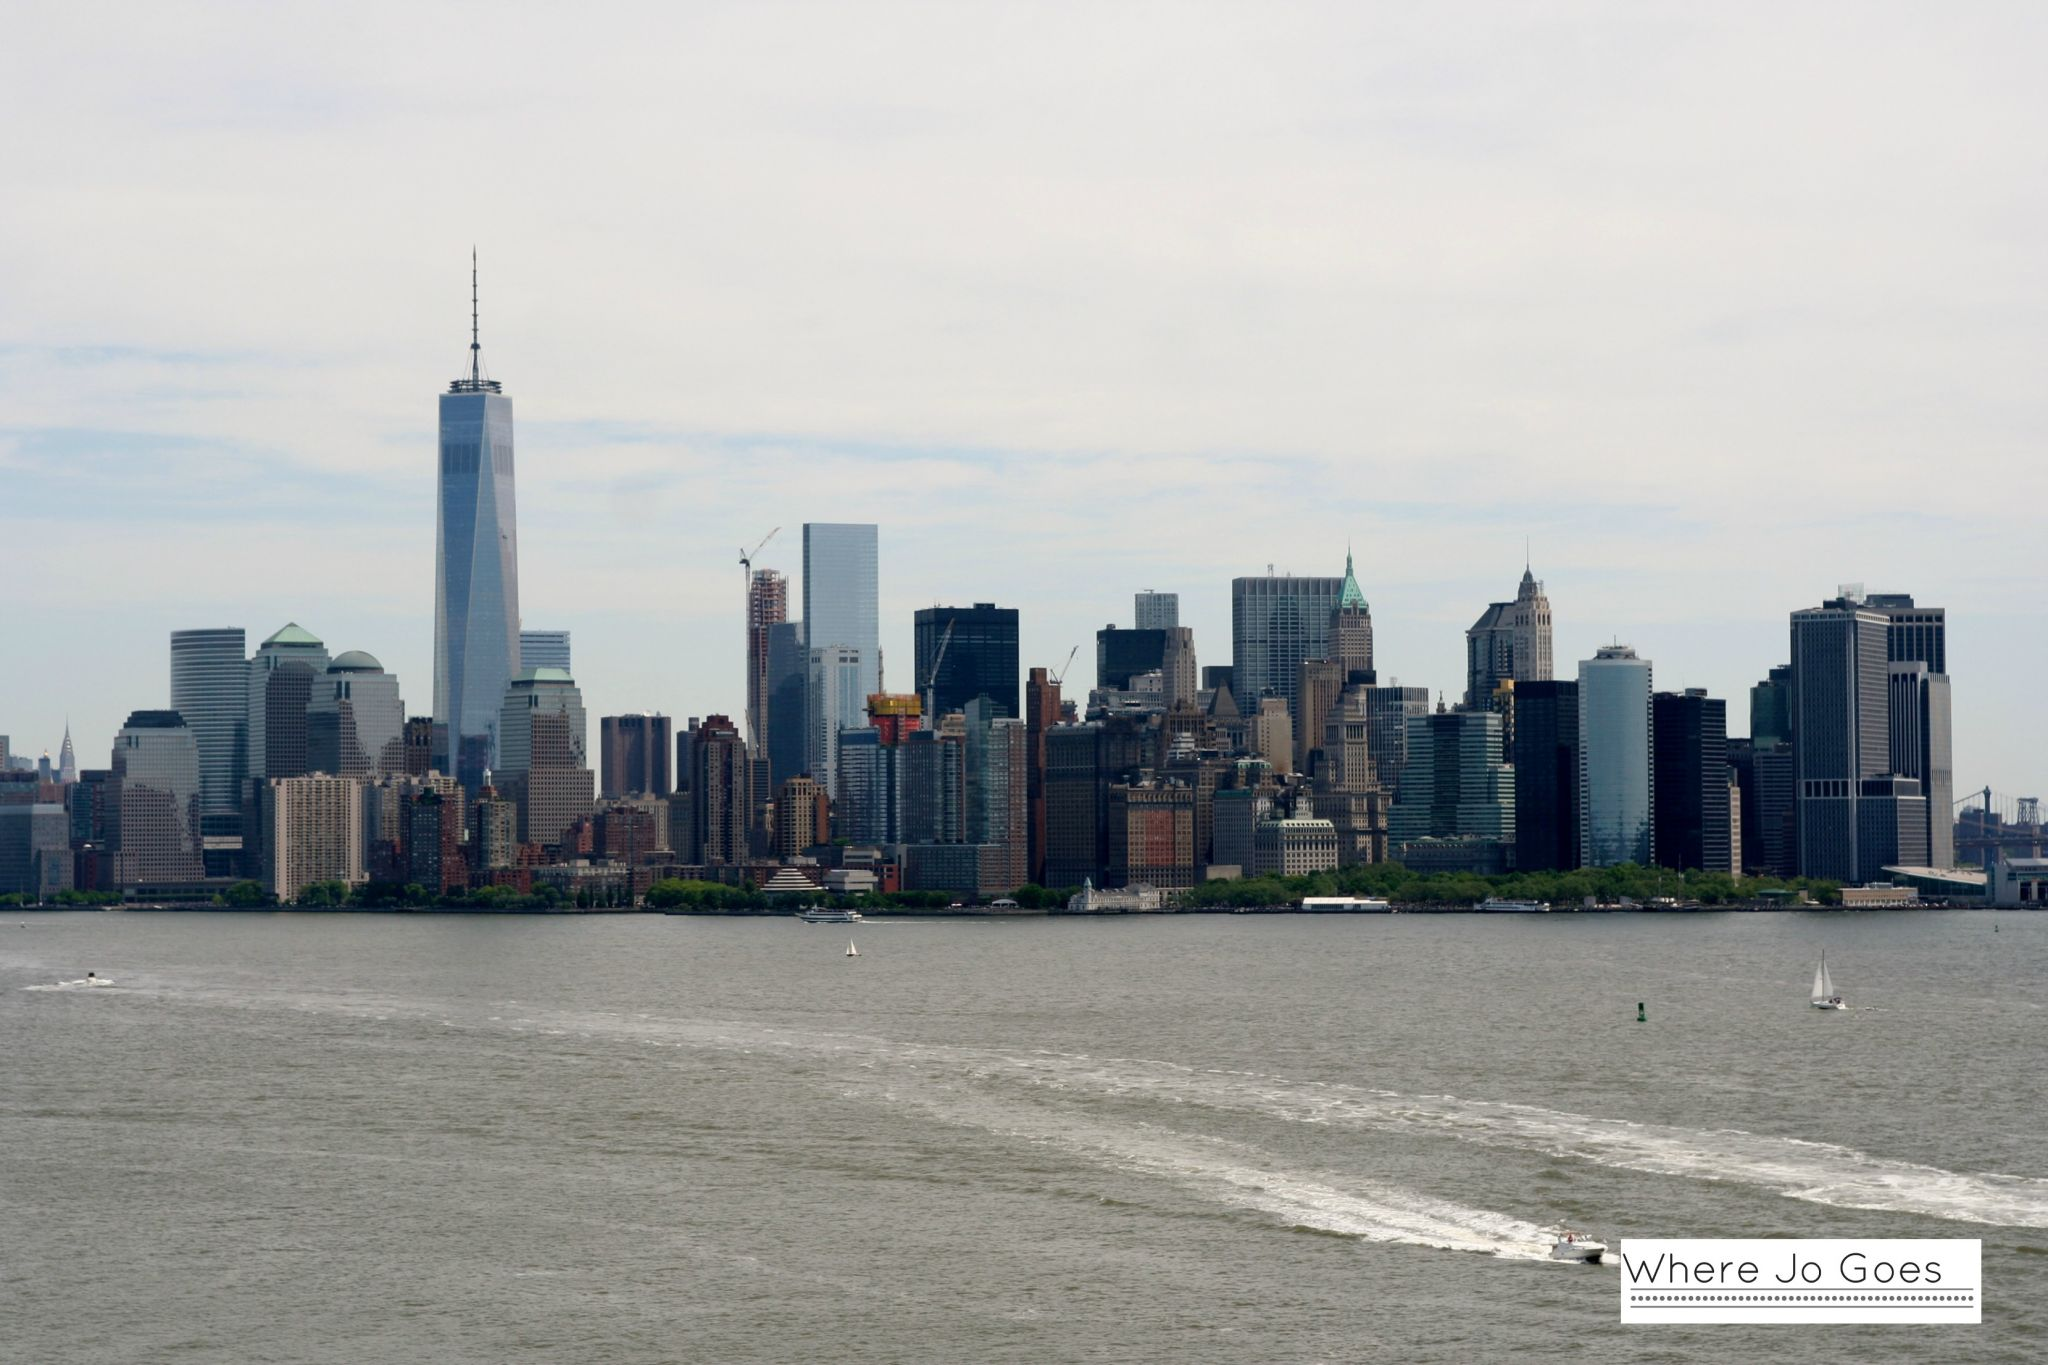 Manhattan skyline from Statue of Liberty